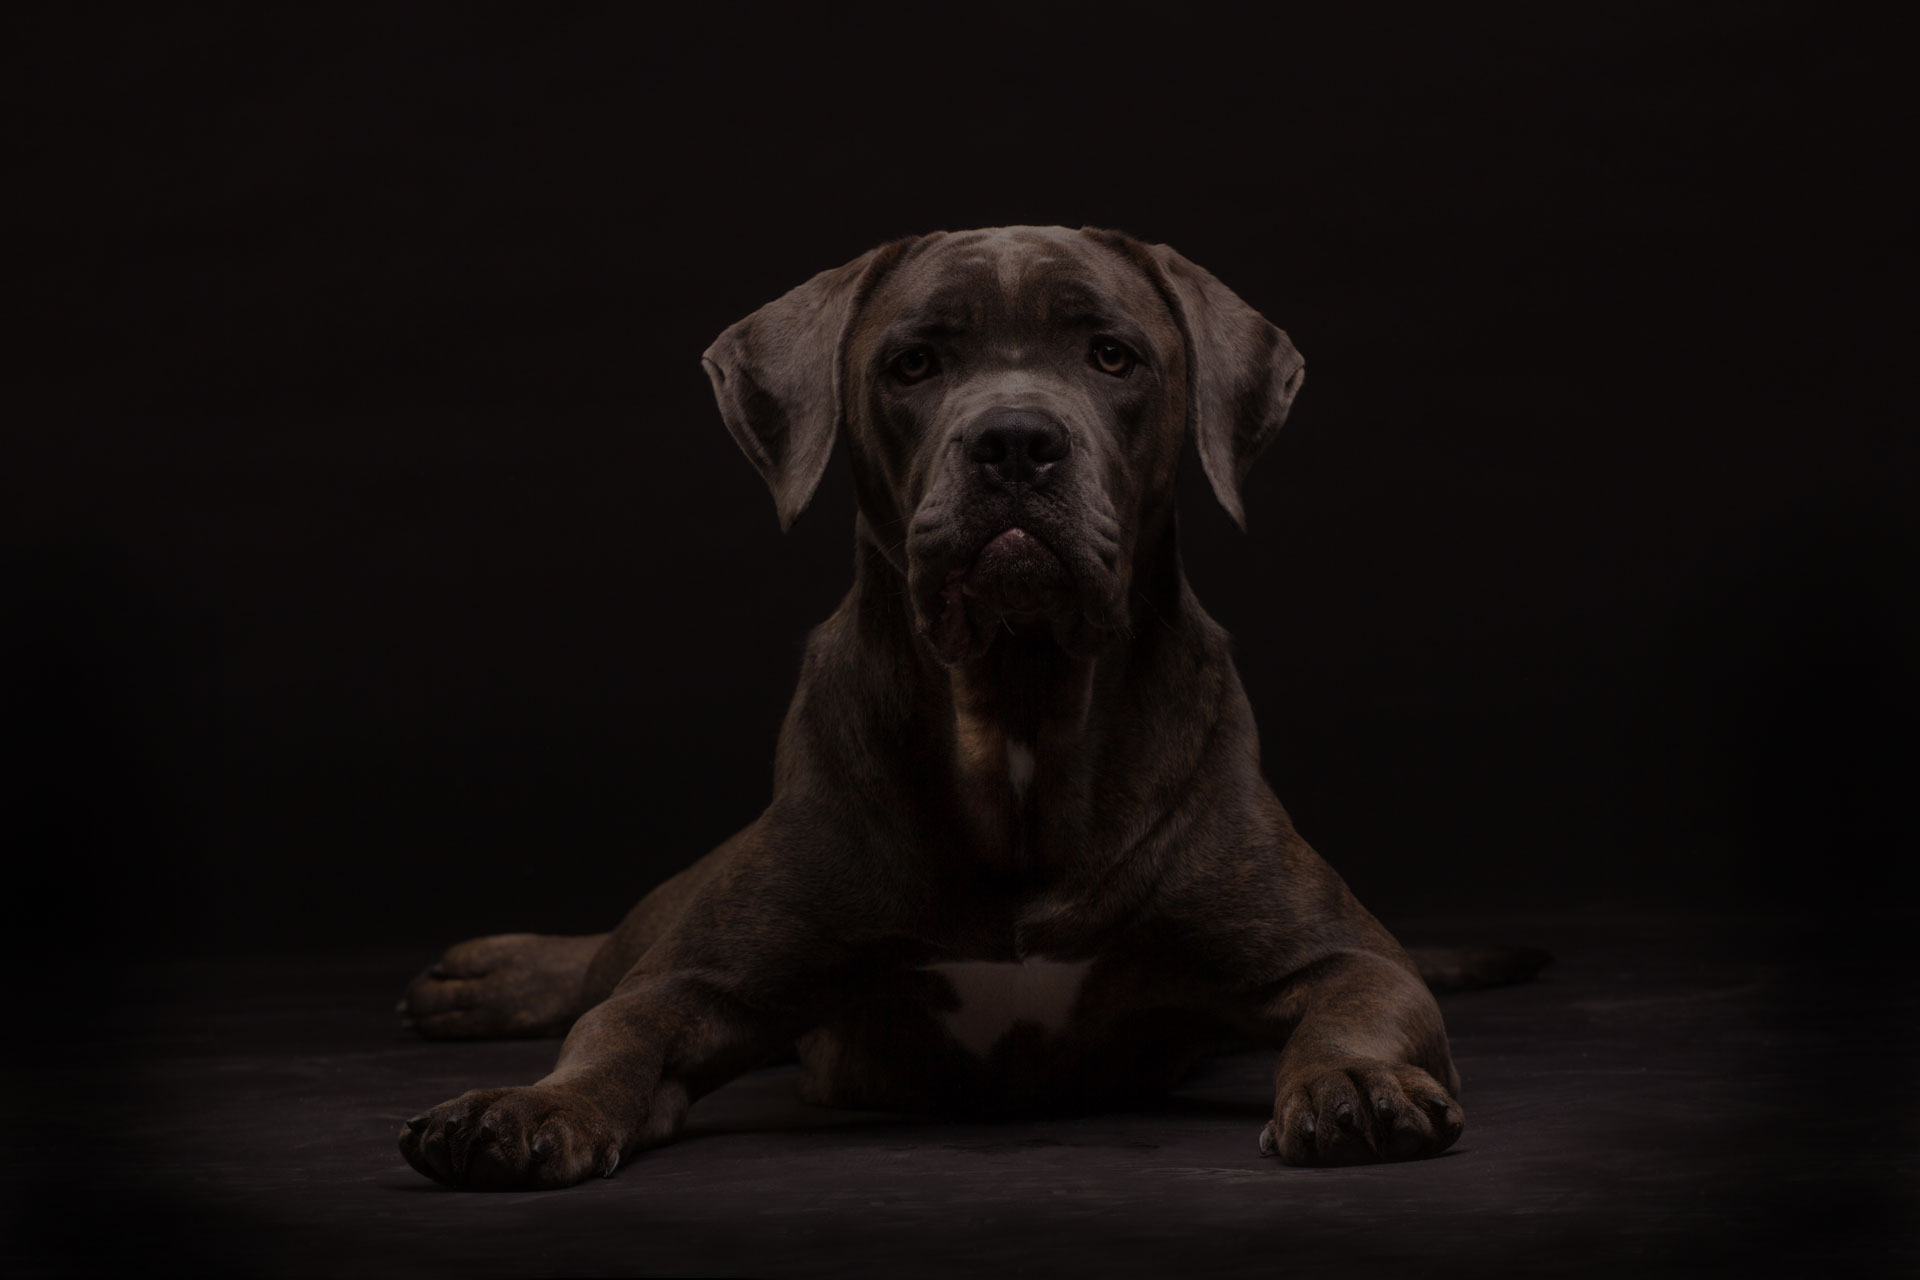 Cane corso, dog on the black background - Image